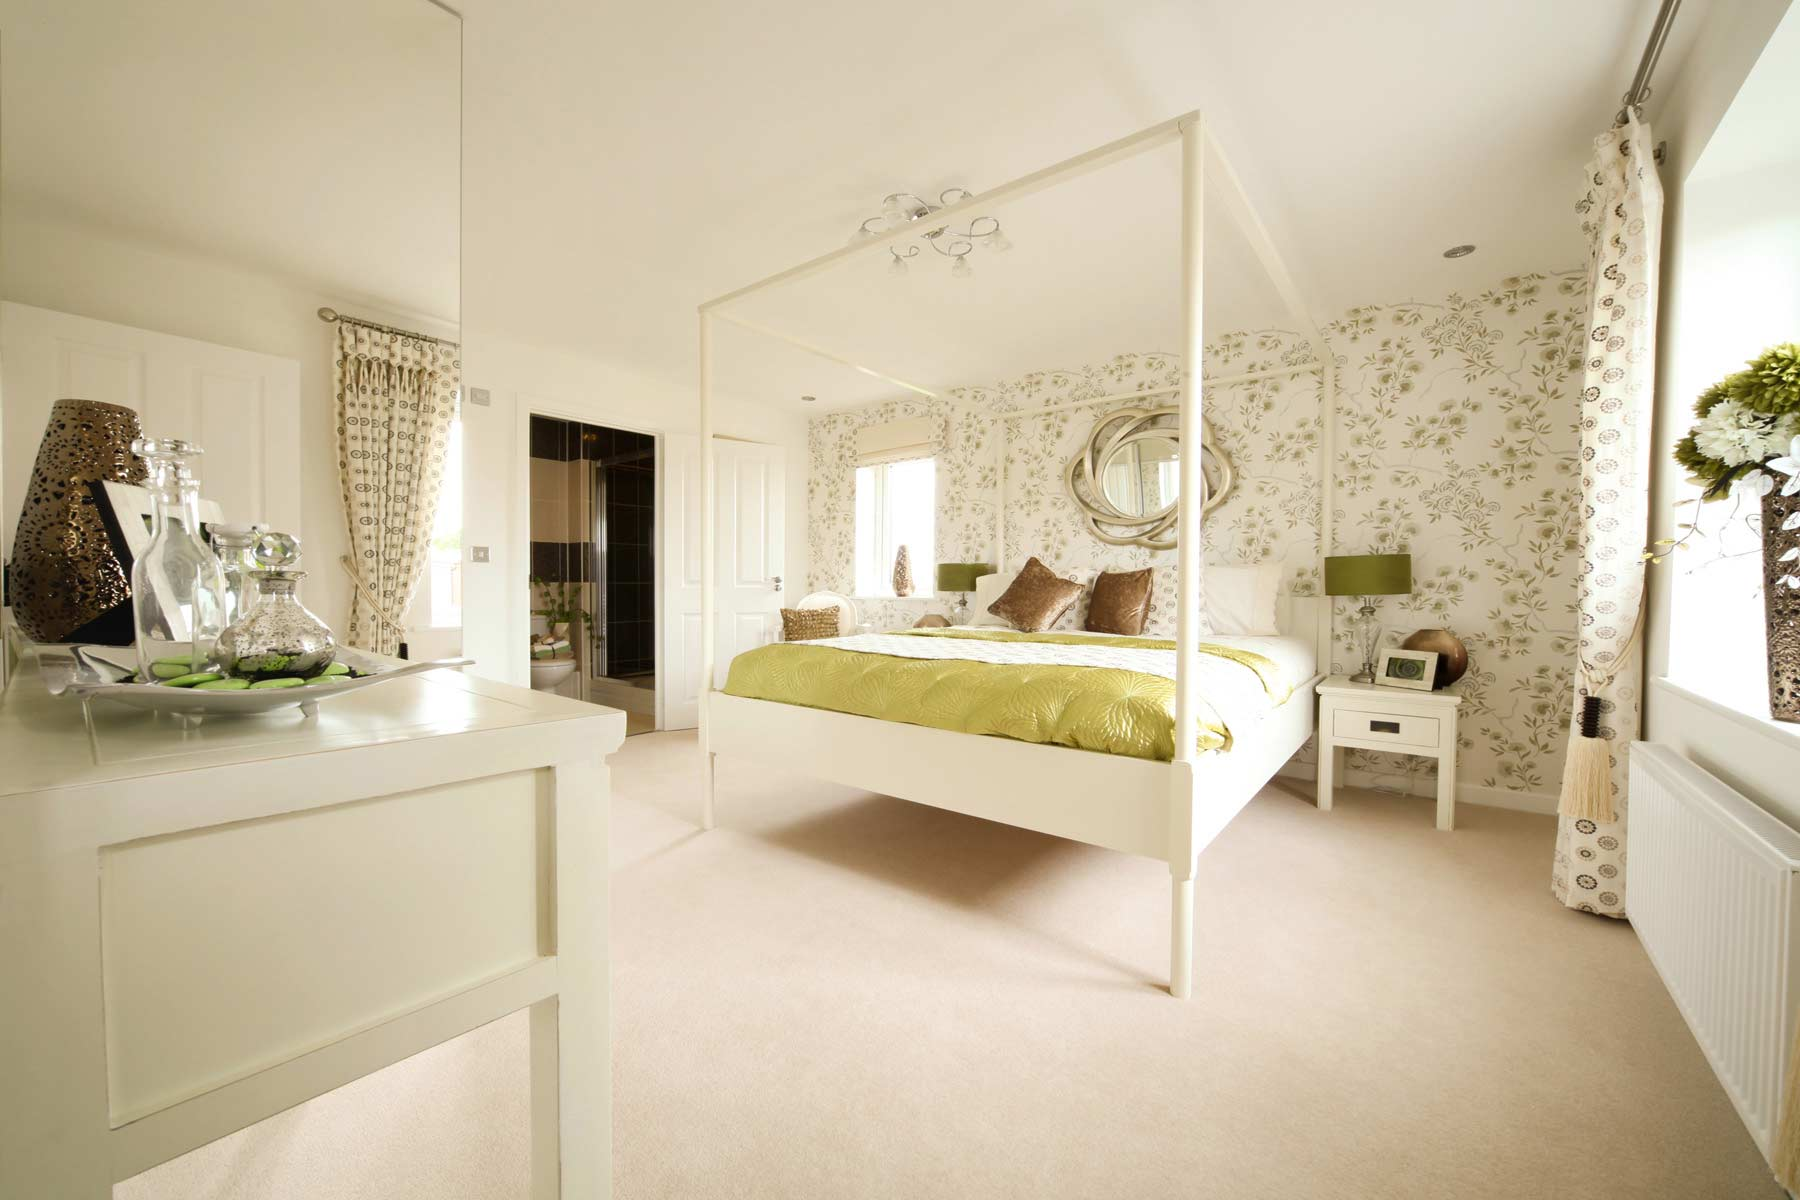 A typical Taylor Wimpey en suite bedroom.